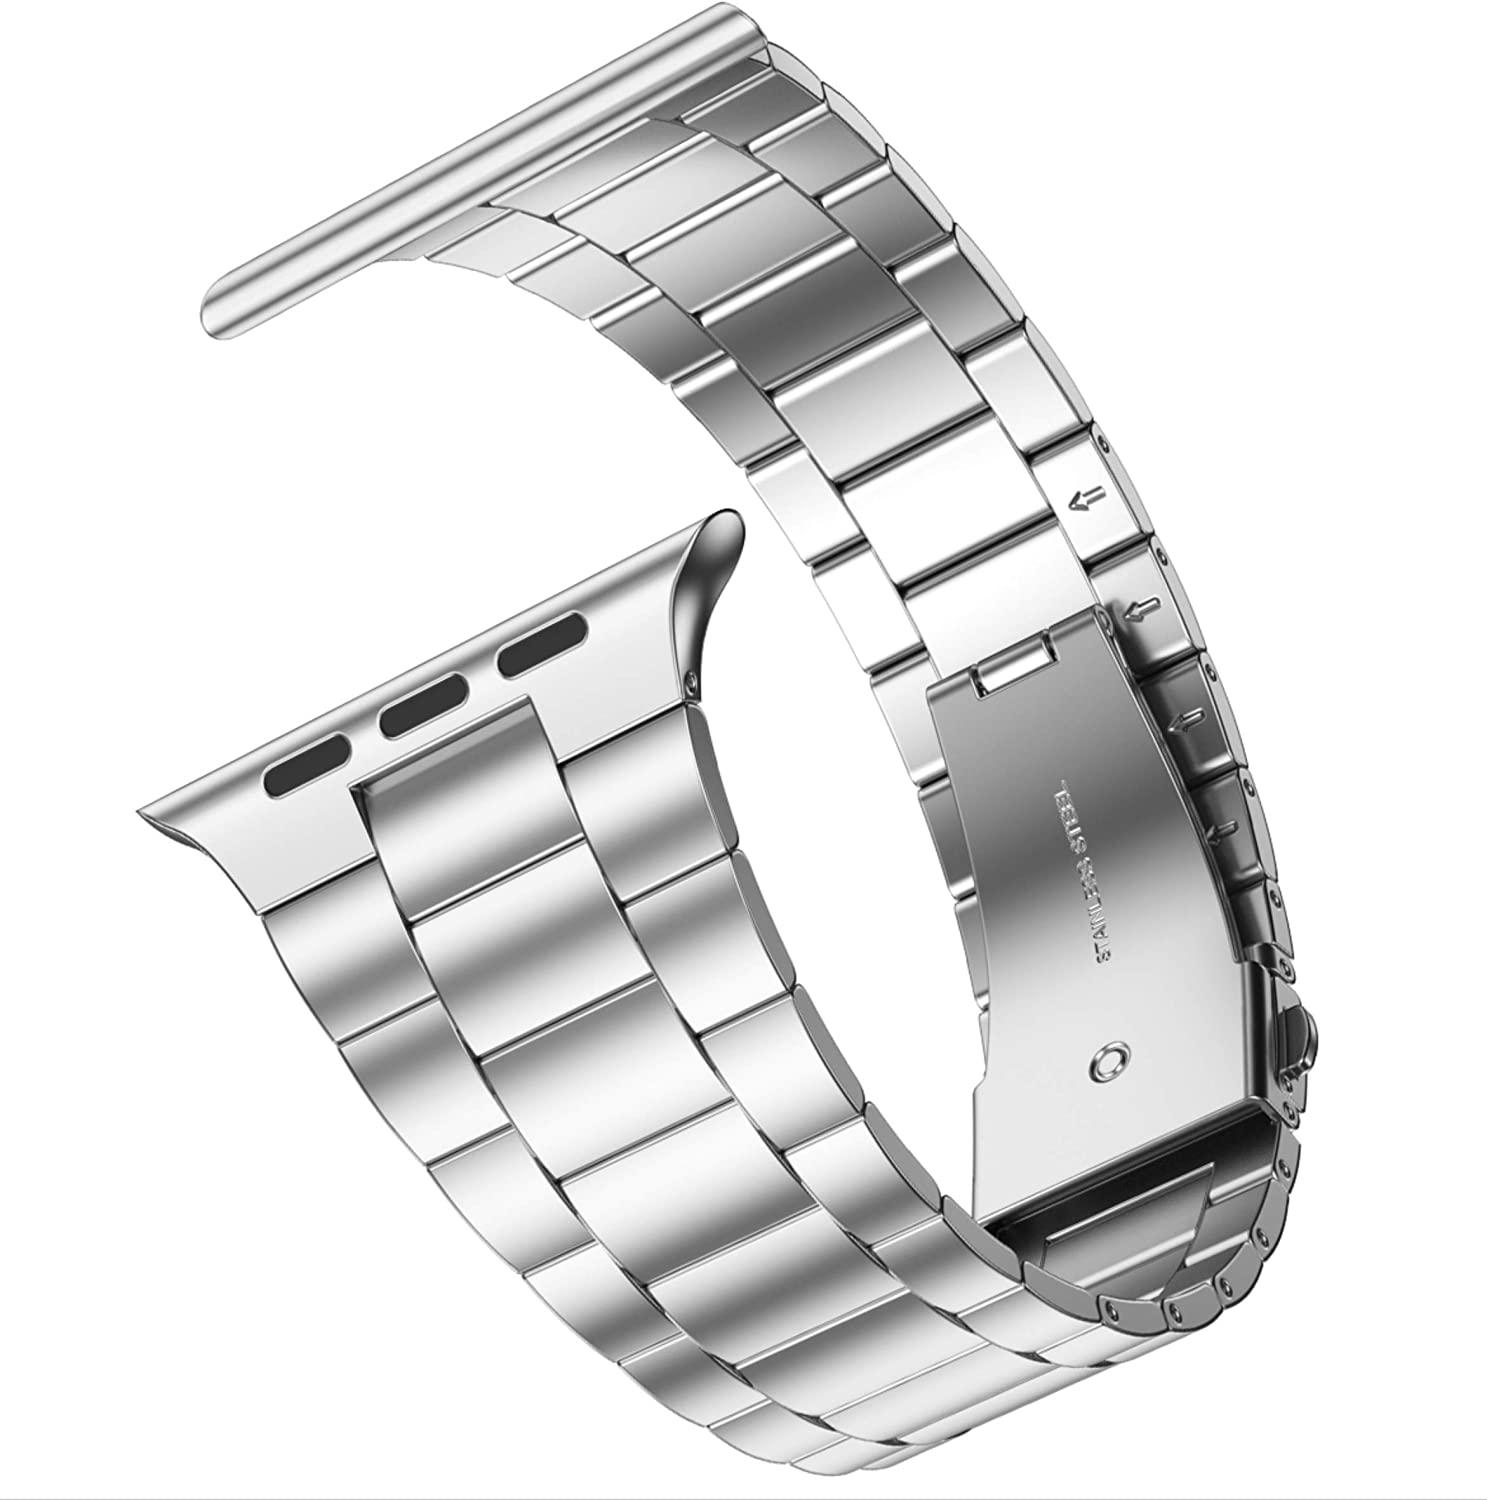 [Upgraded] Wolait Compatible with Apple Watch Band 40mm 38mm , Ultra Thin Solid Stainless Steel Band for Apple iWatch SE Series 6/5/4/3/2/1 Men Women -Silver